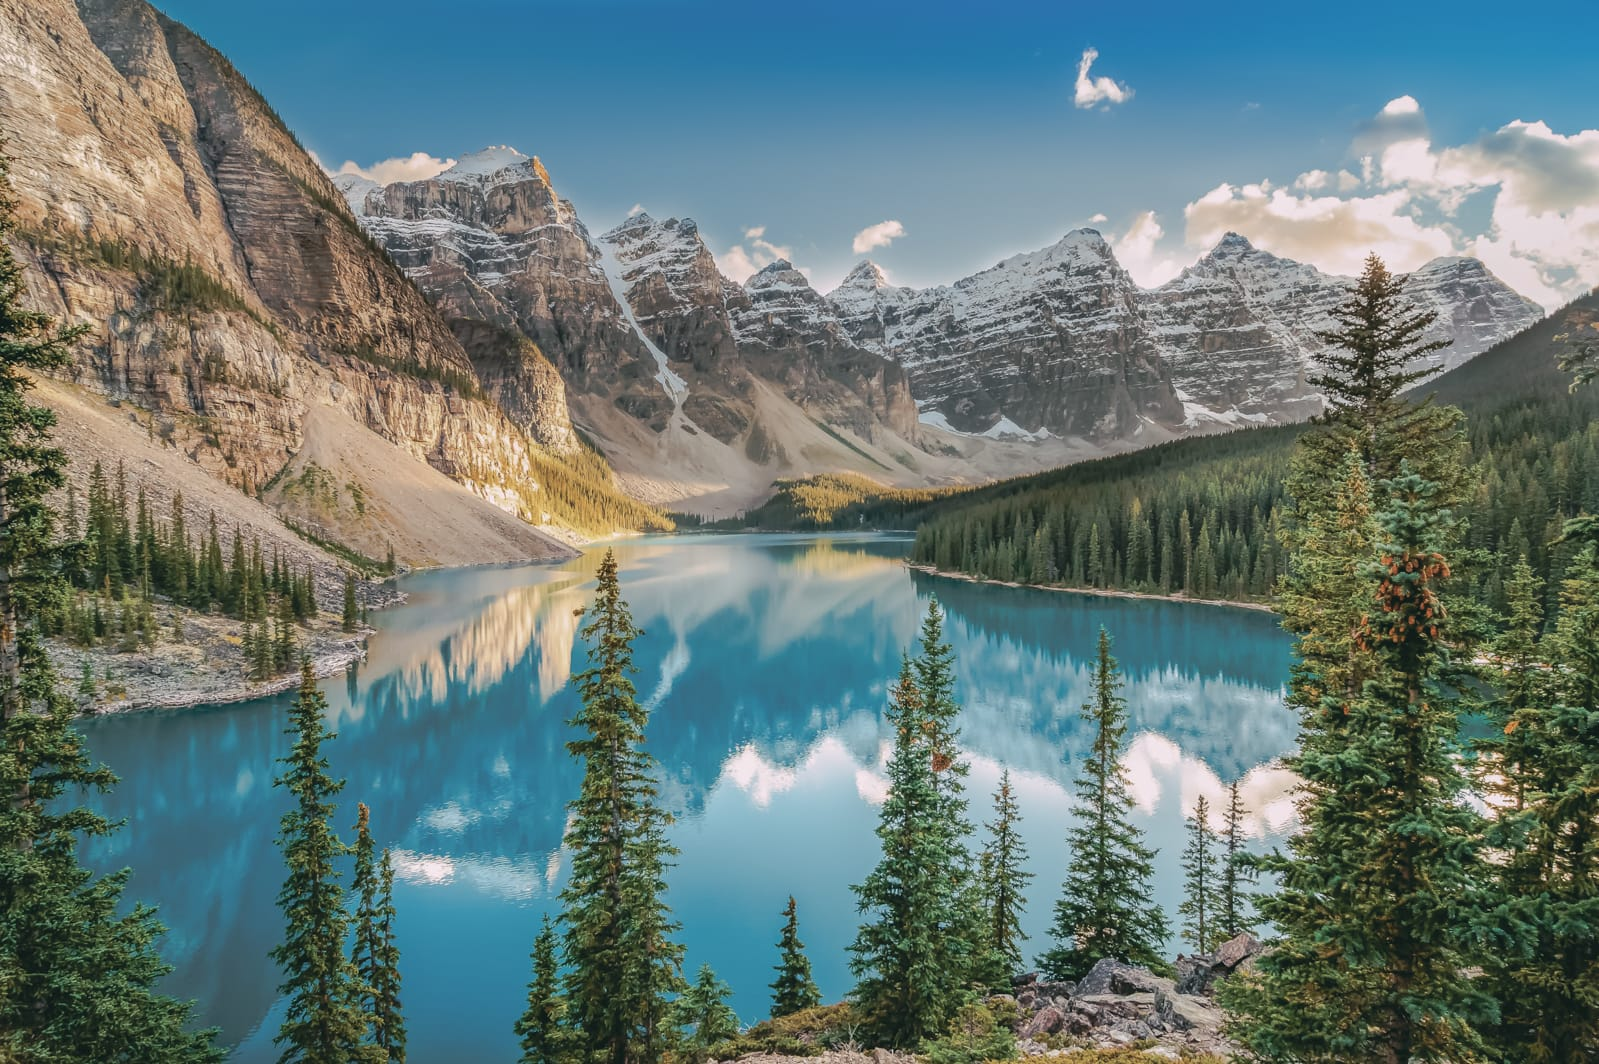 alpine lake in the Canadian rockies